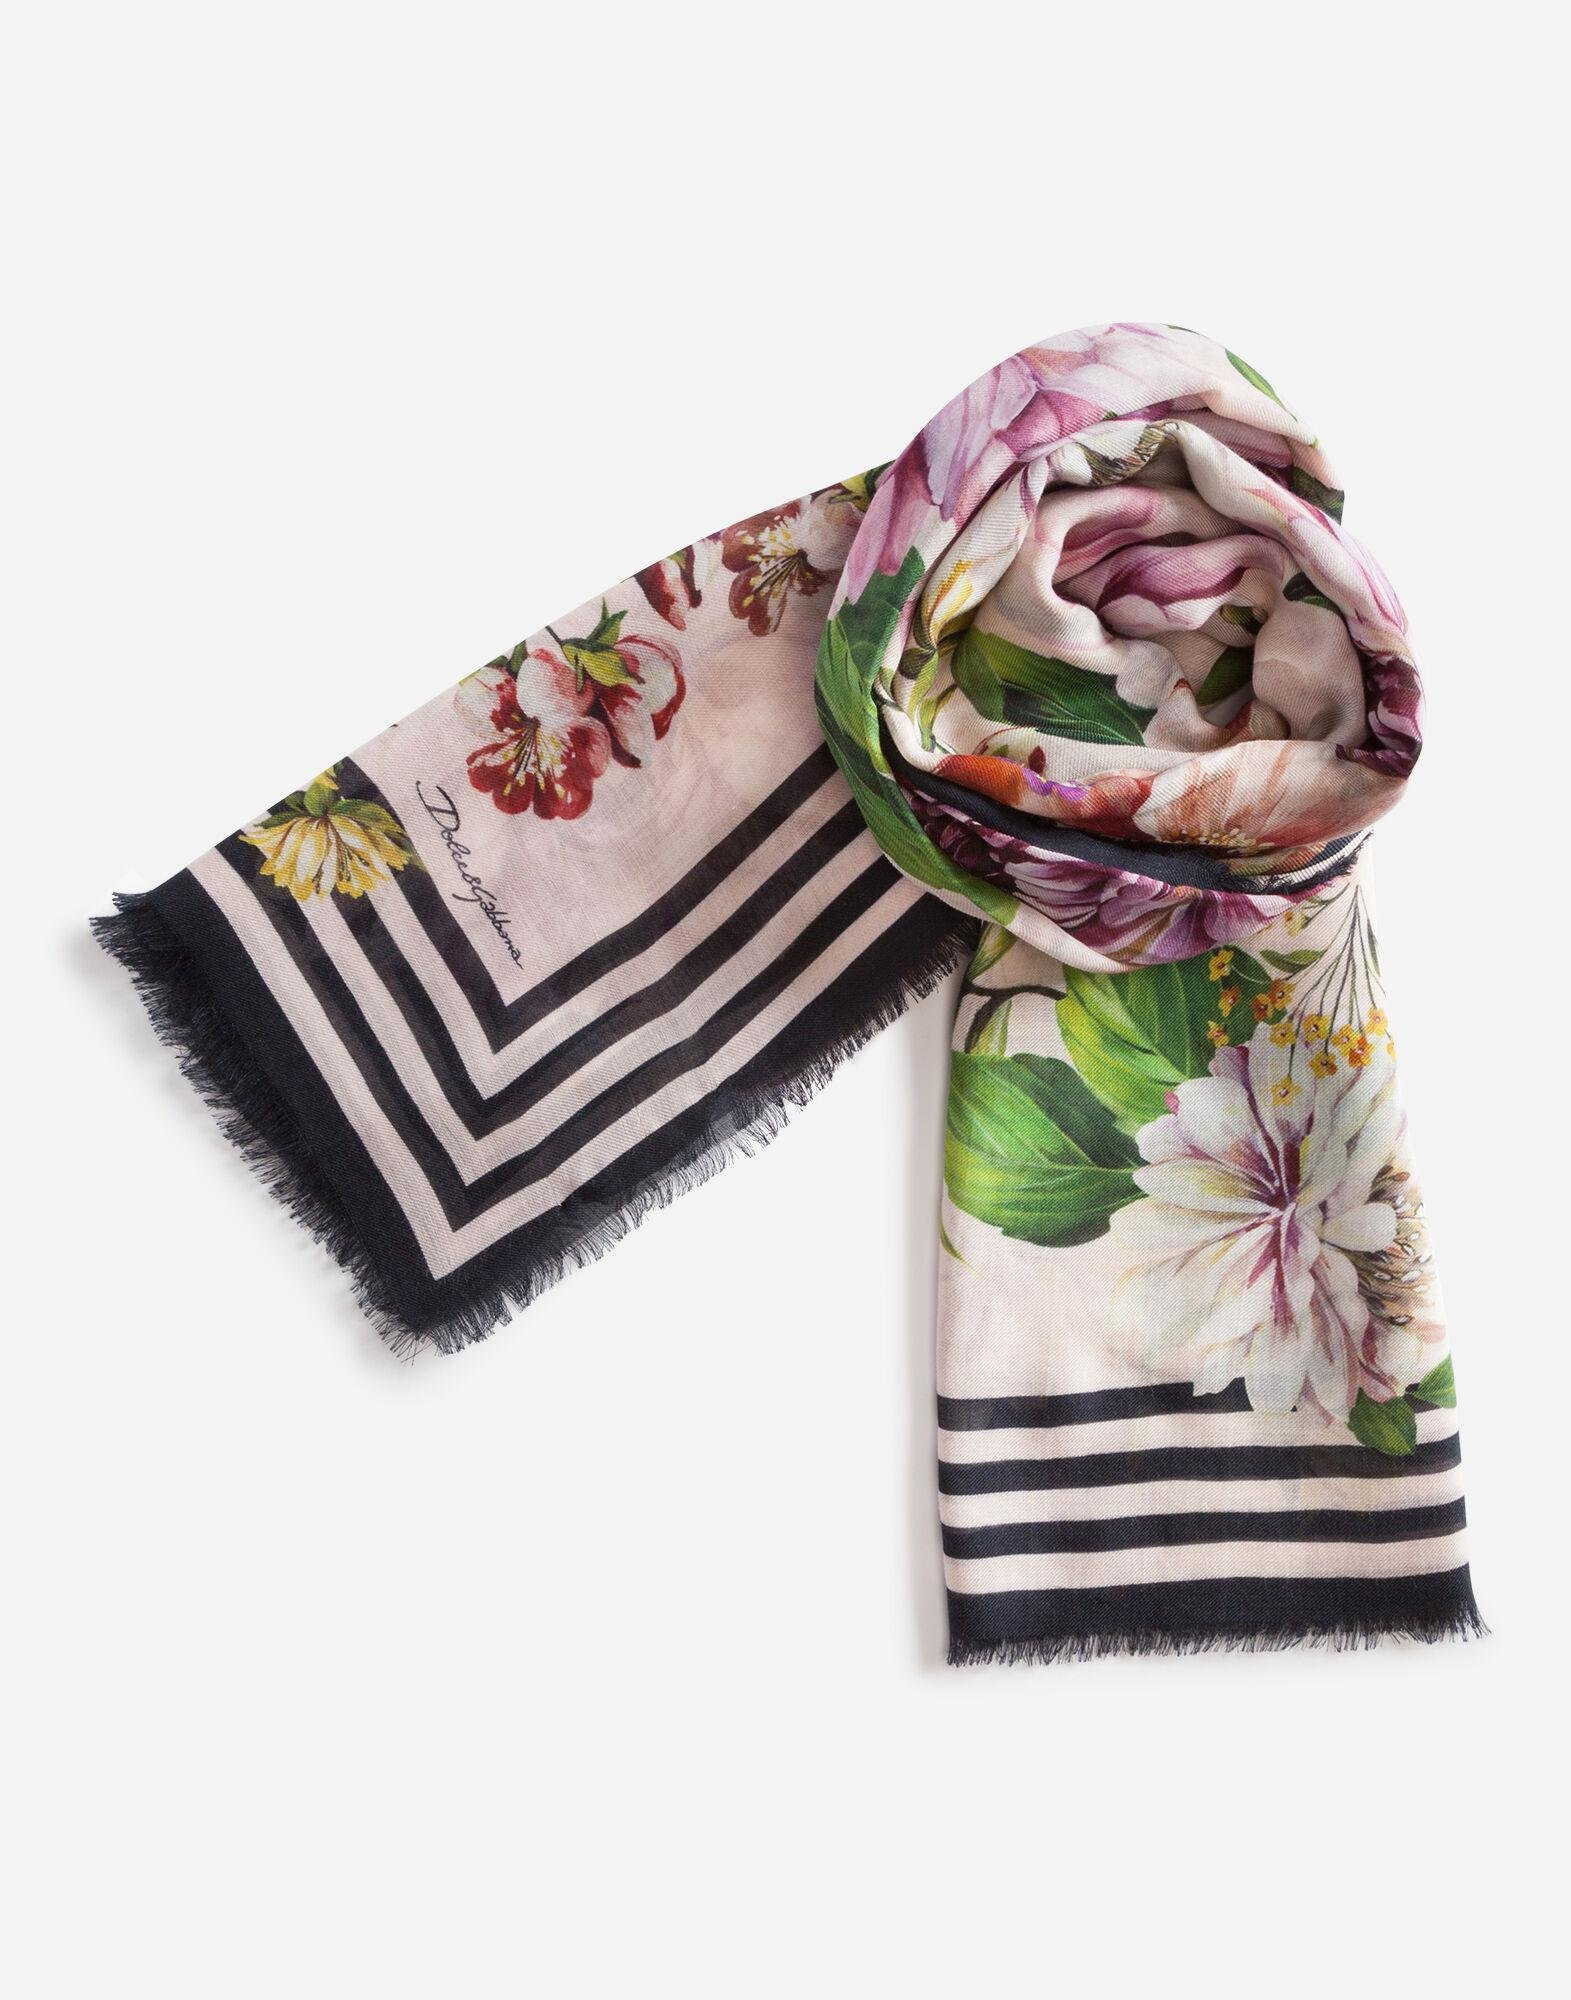 Floral rose print foulard in cashmere and modal 140 x 140cm - 55 x 55 inches